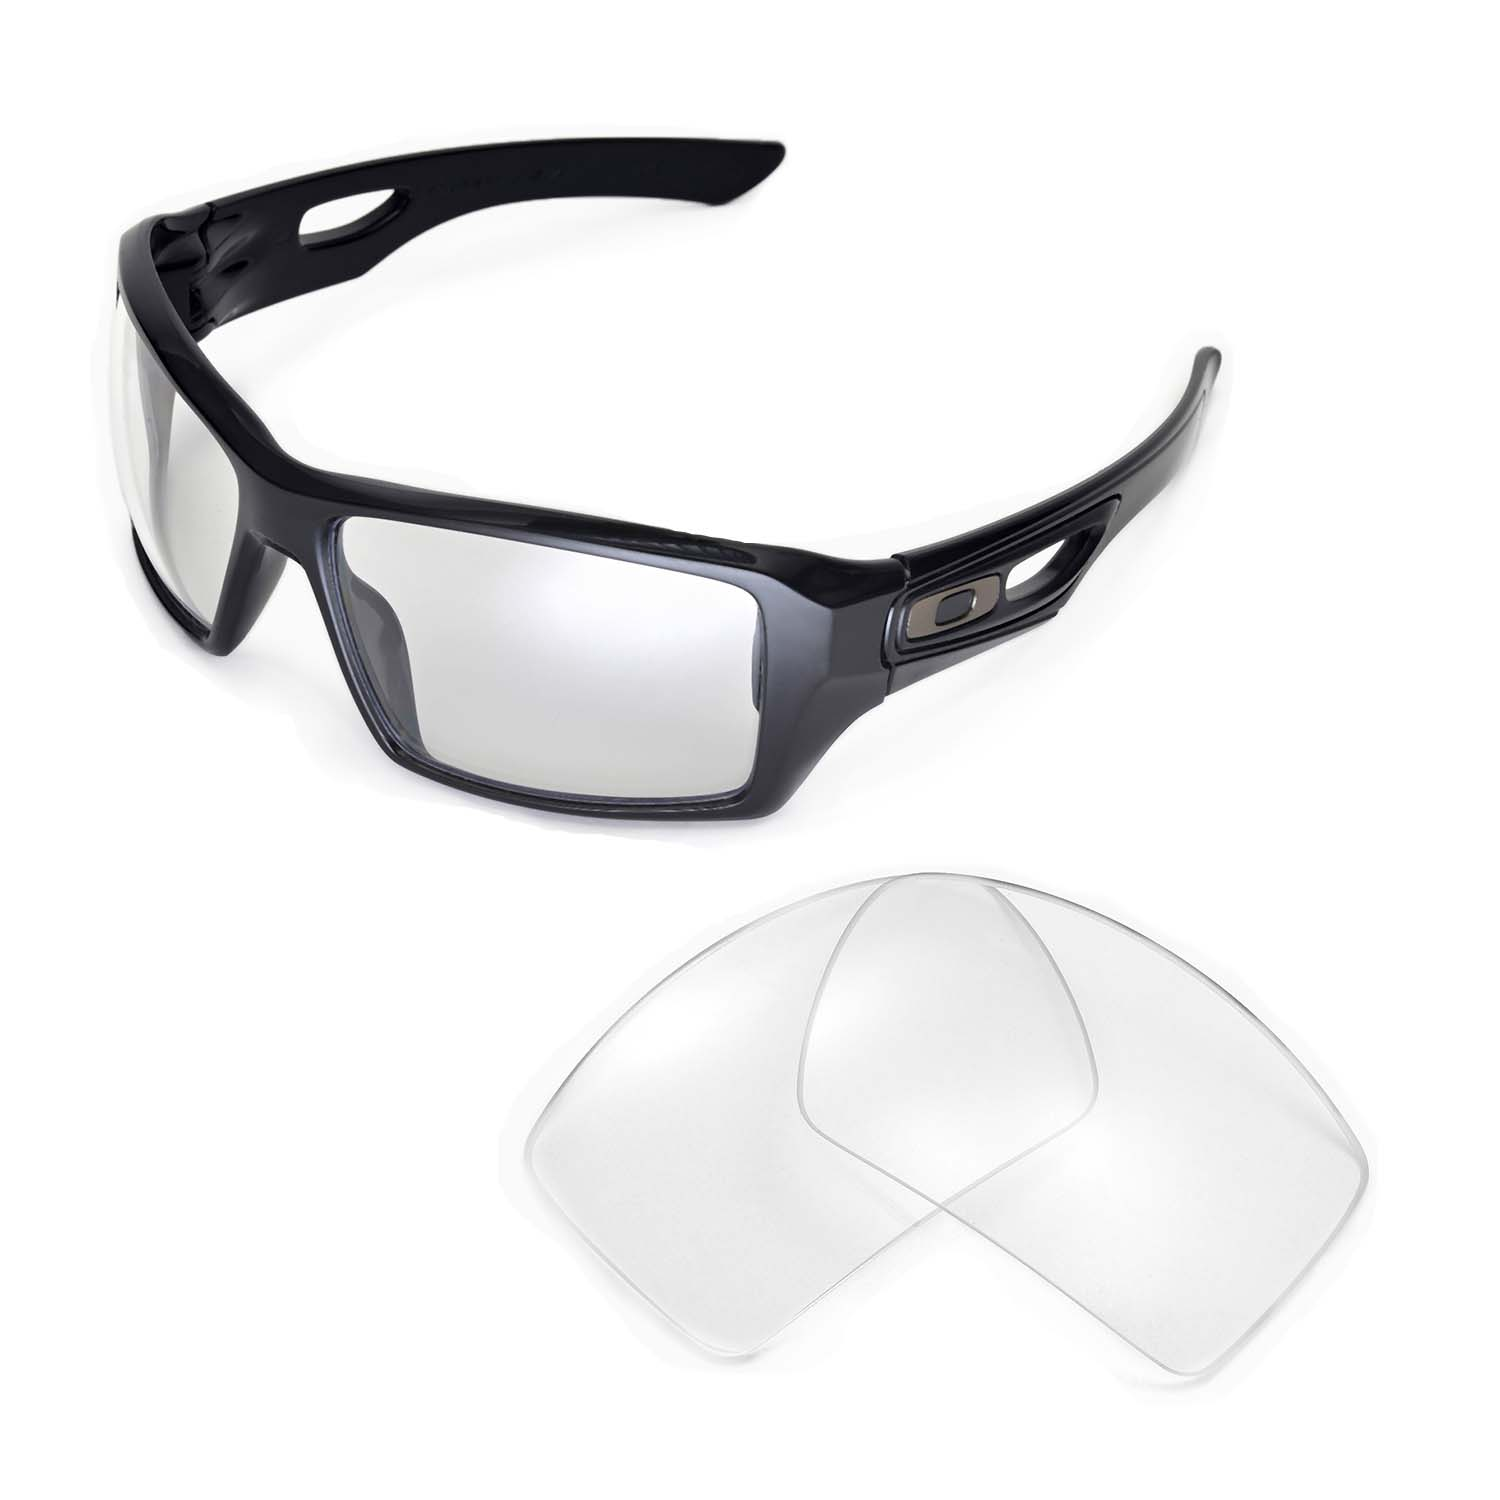 409a9ff911 ... Oakley Eyepatch 2 x1  Walleva Microfiber Lens Cleaning Cloth x1. main  image